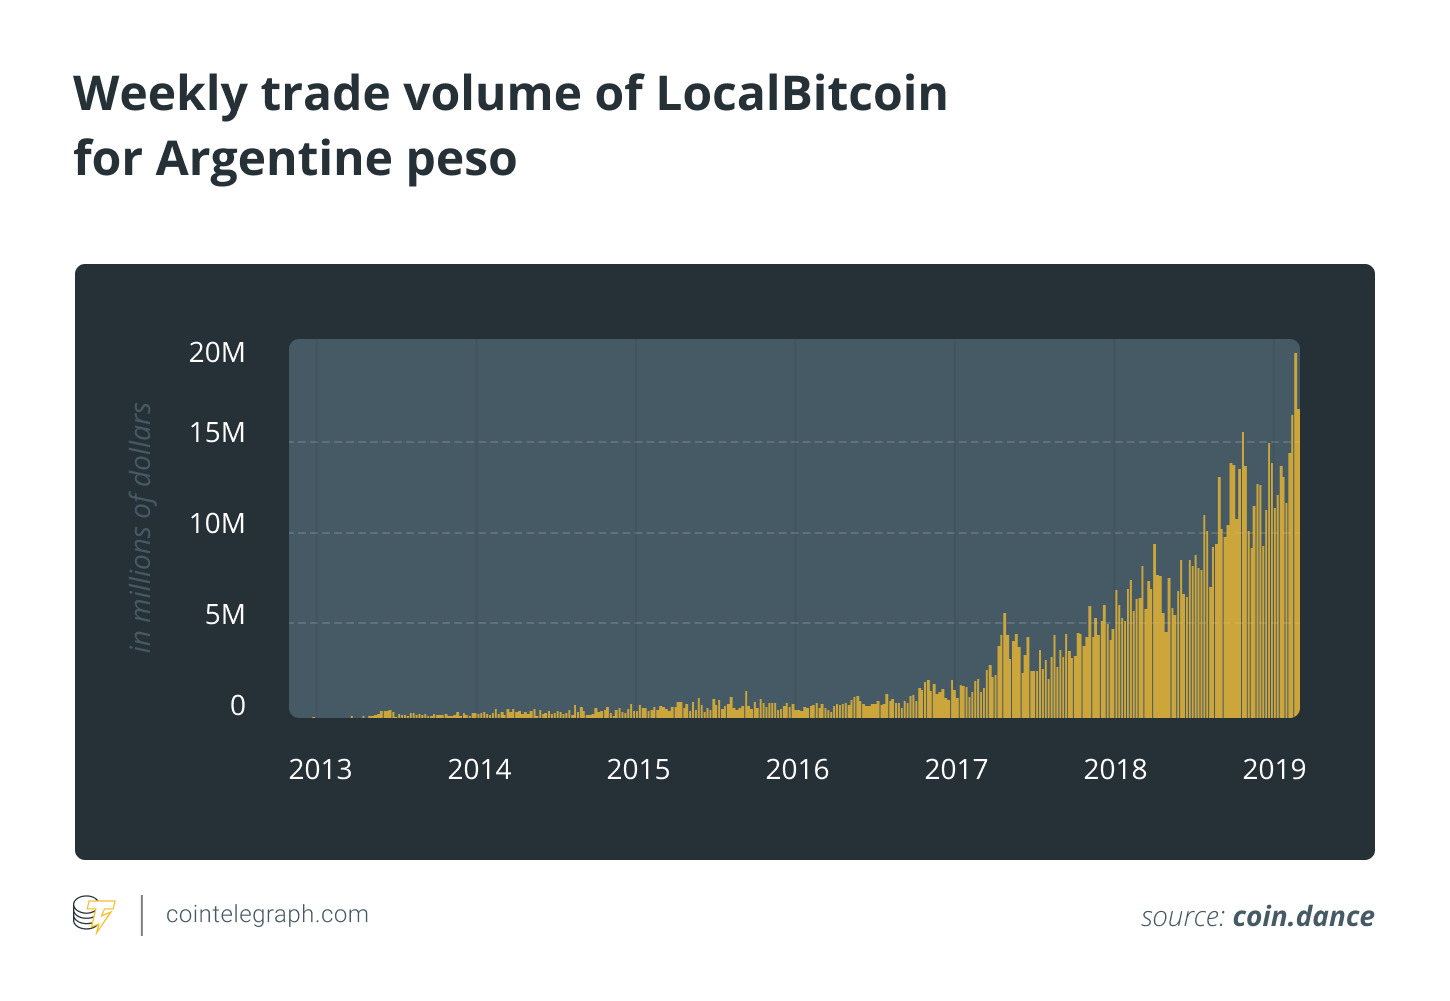 Weekly trade volume of LocalBitcoin for Argentine peso